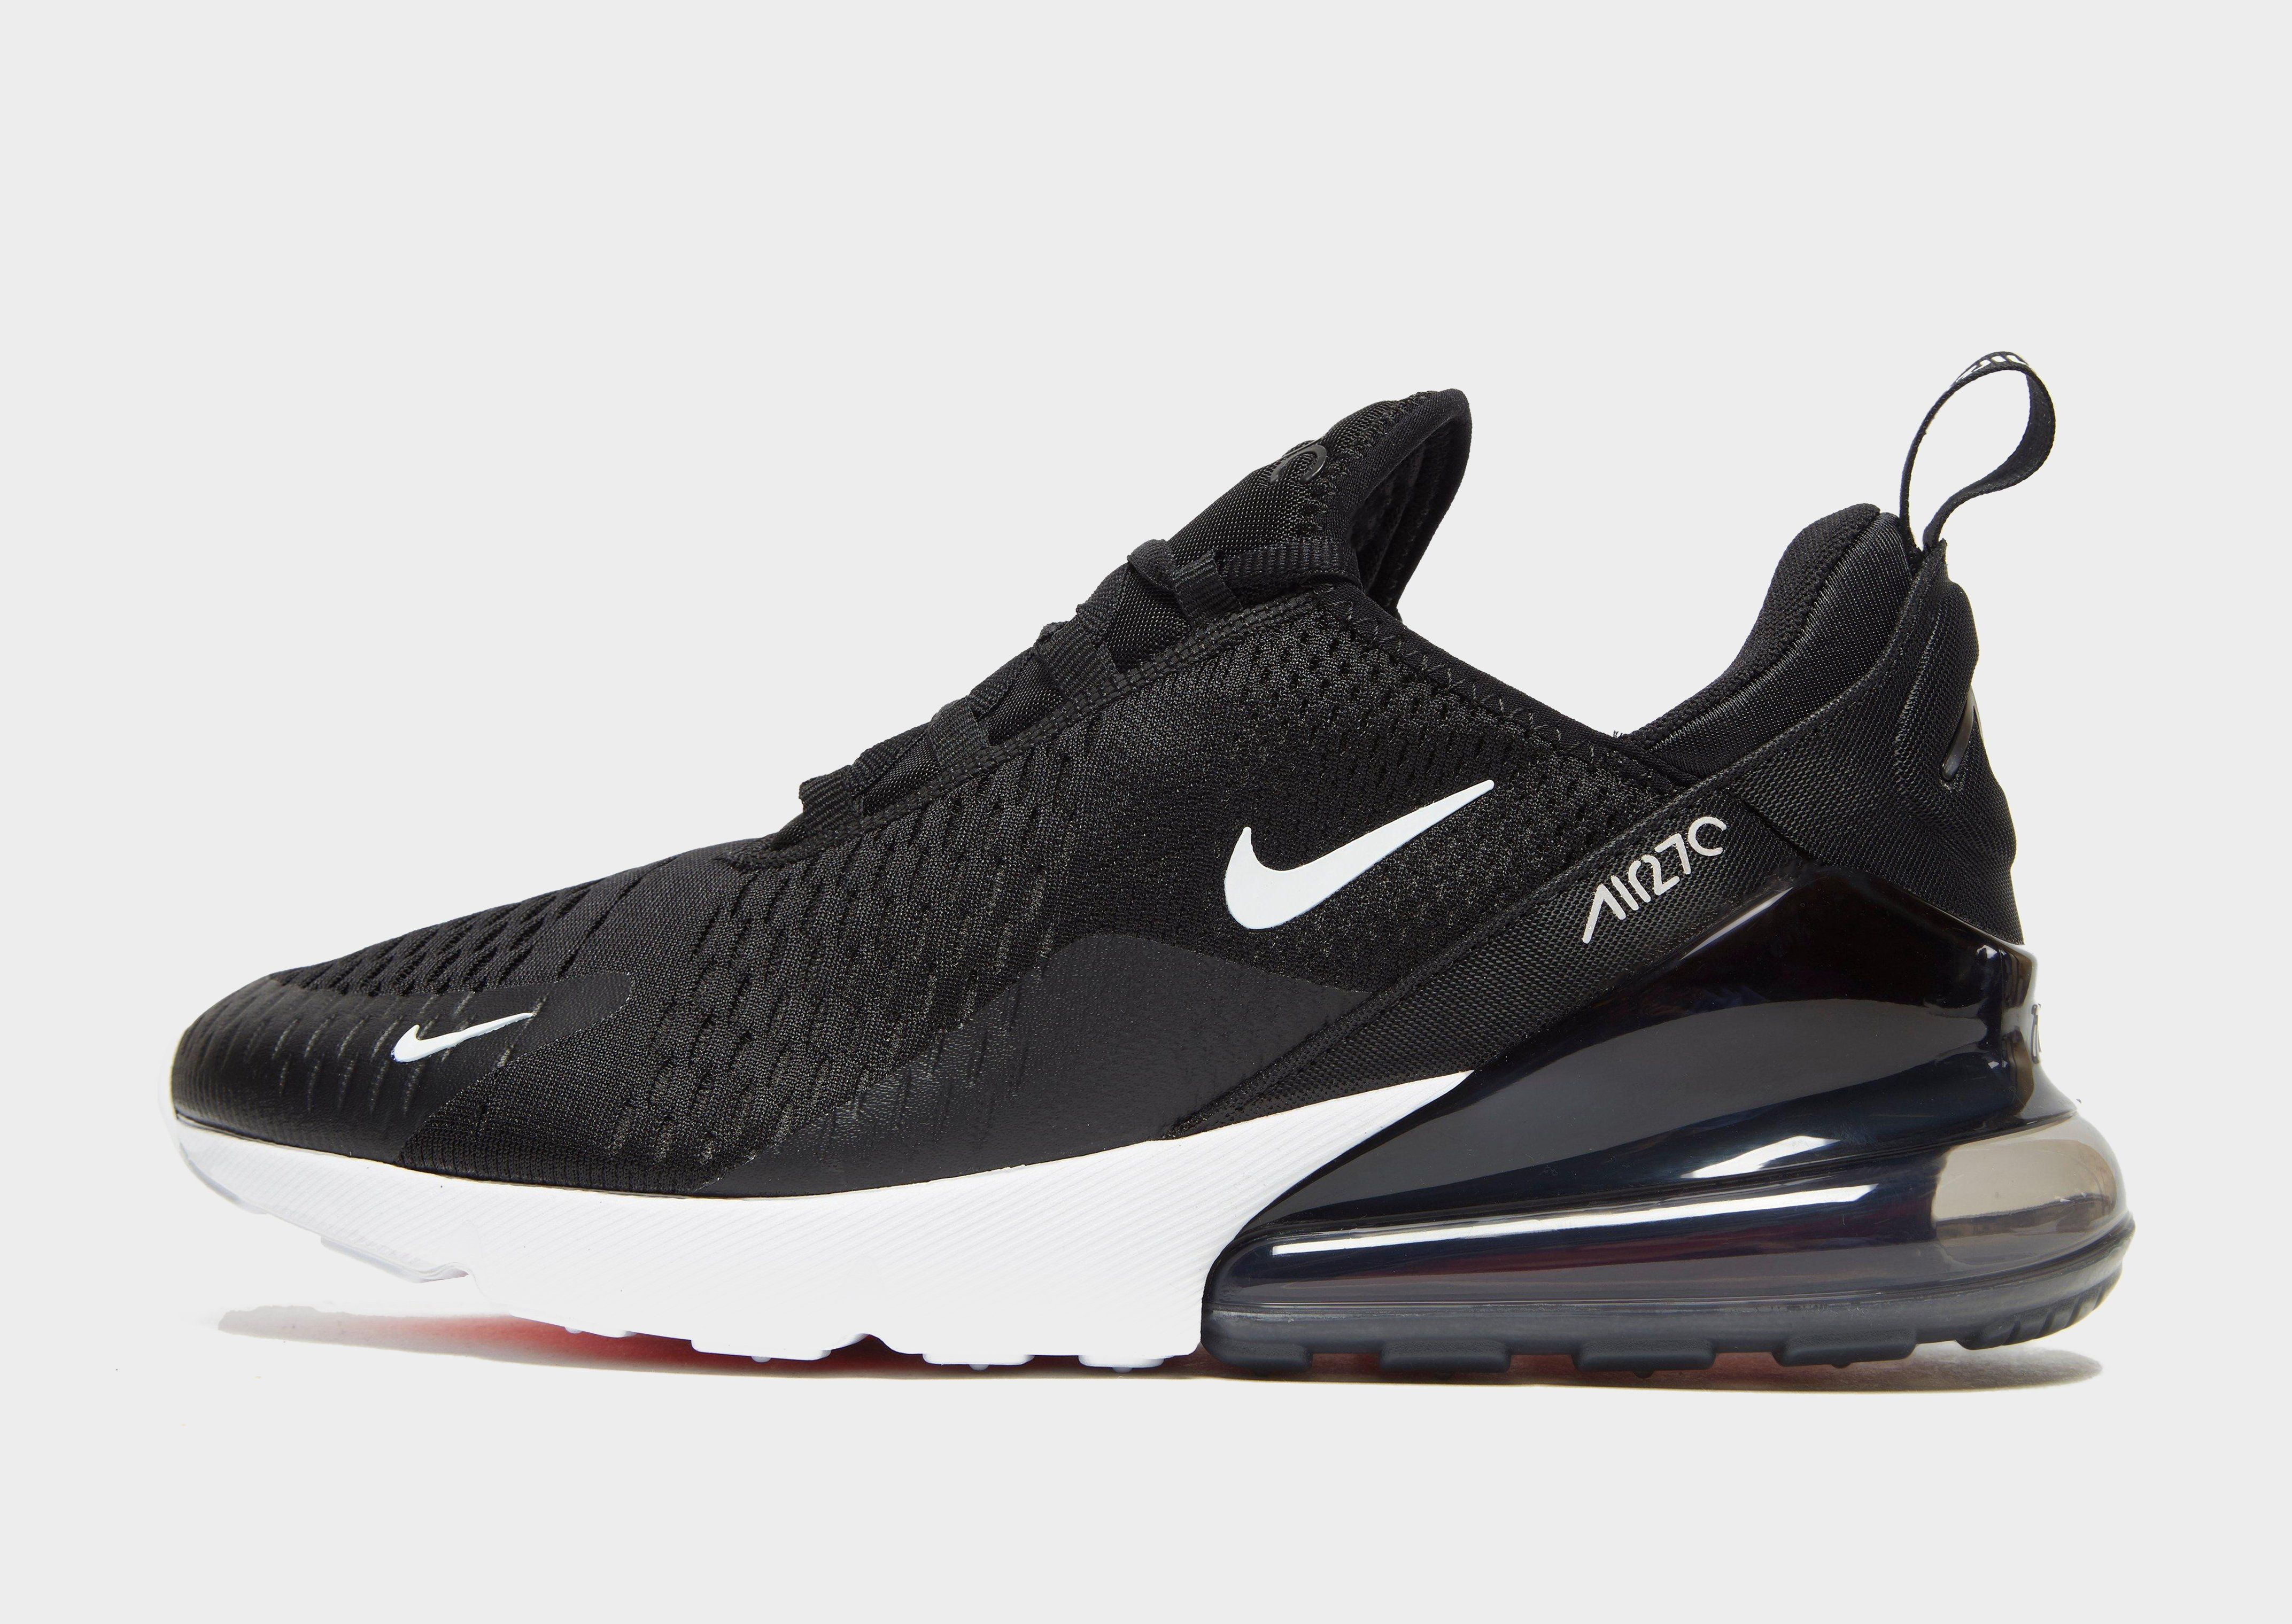 huge selection of b7617 d76f3 NIKE Nike Air Max 270 Men s Shoe   JD Sports